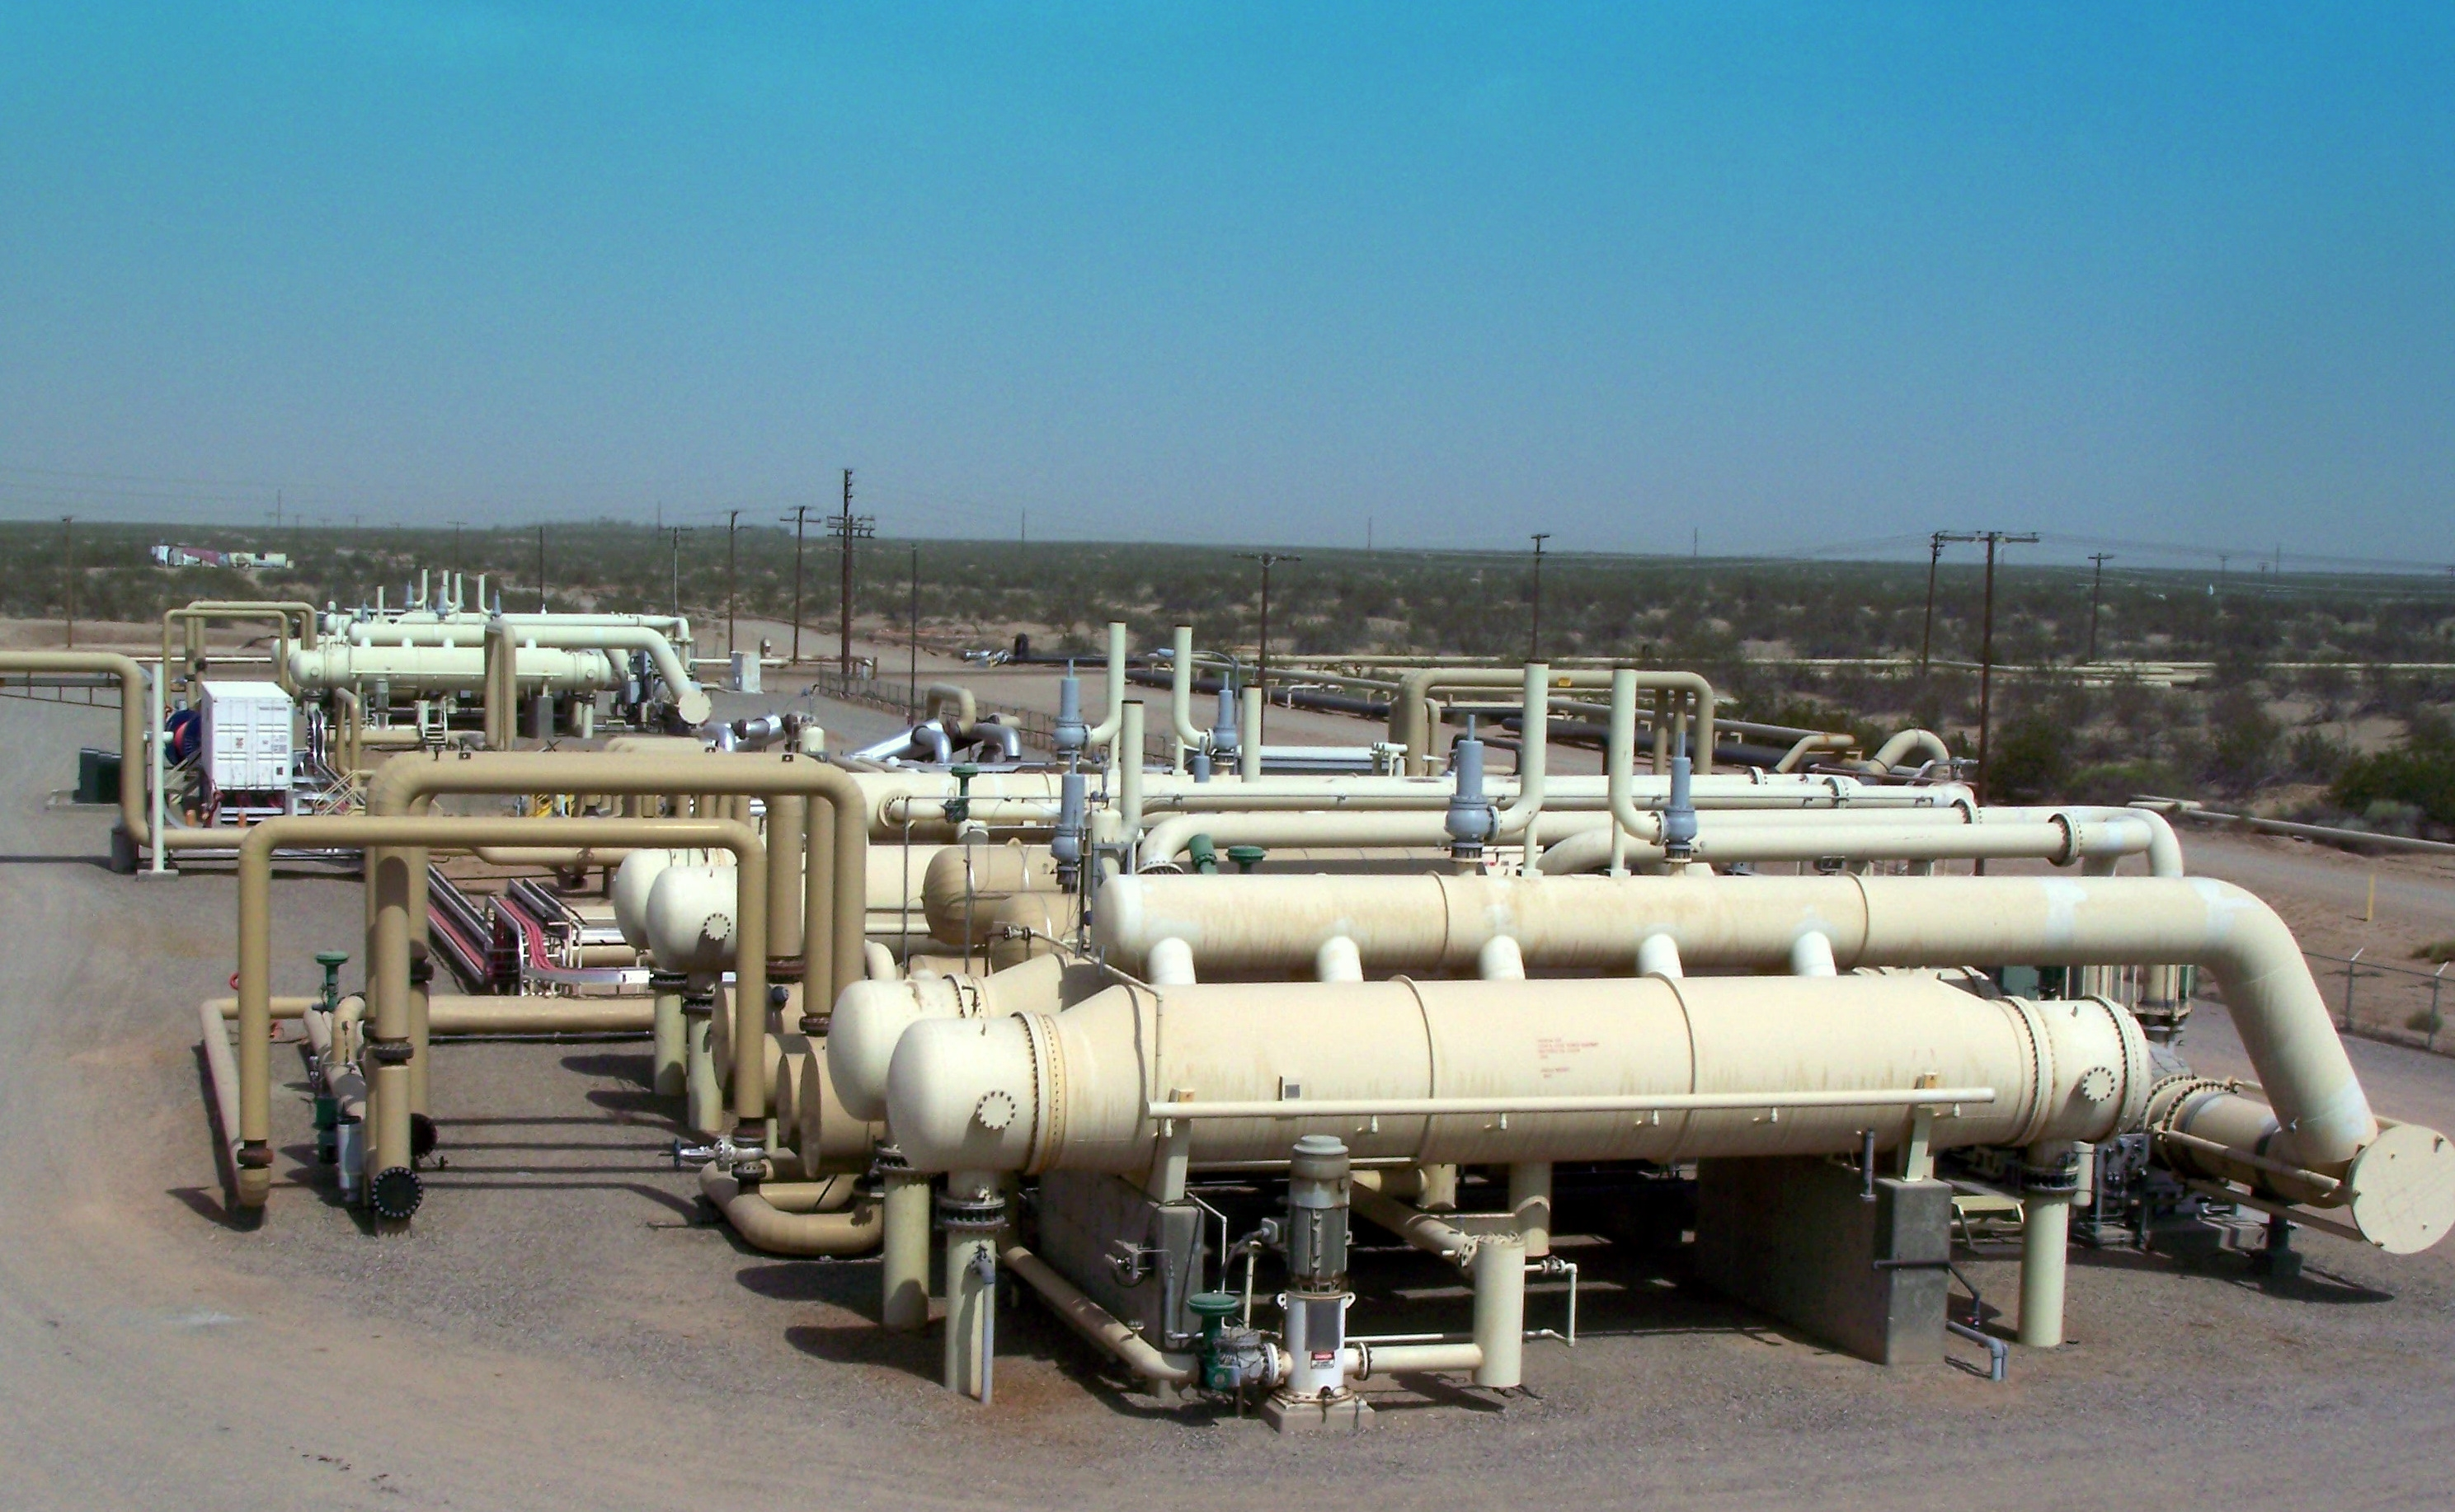 u s geothermal merges with ormat technologies striking a 110m deal